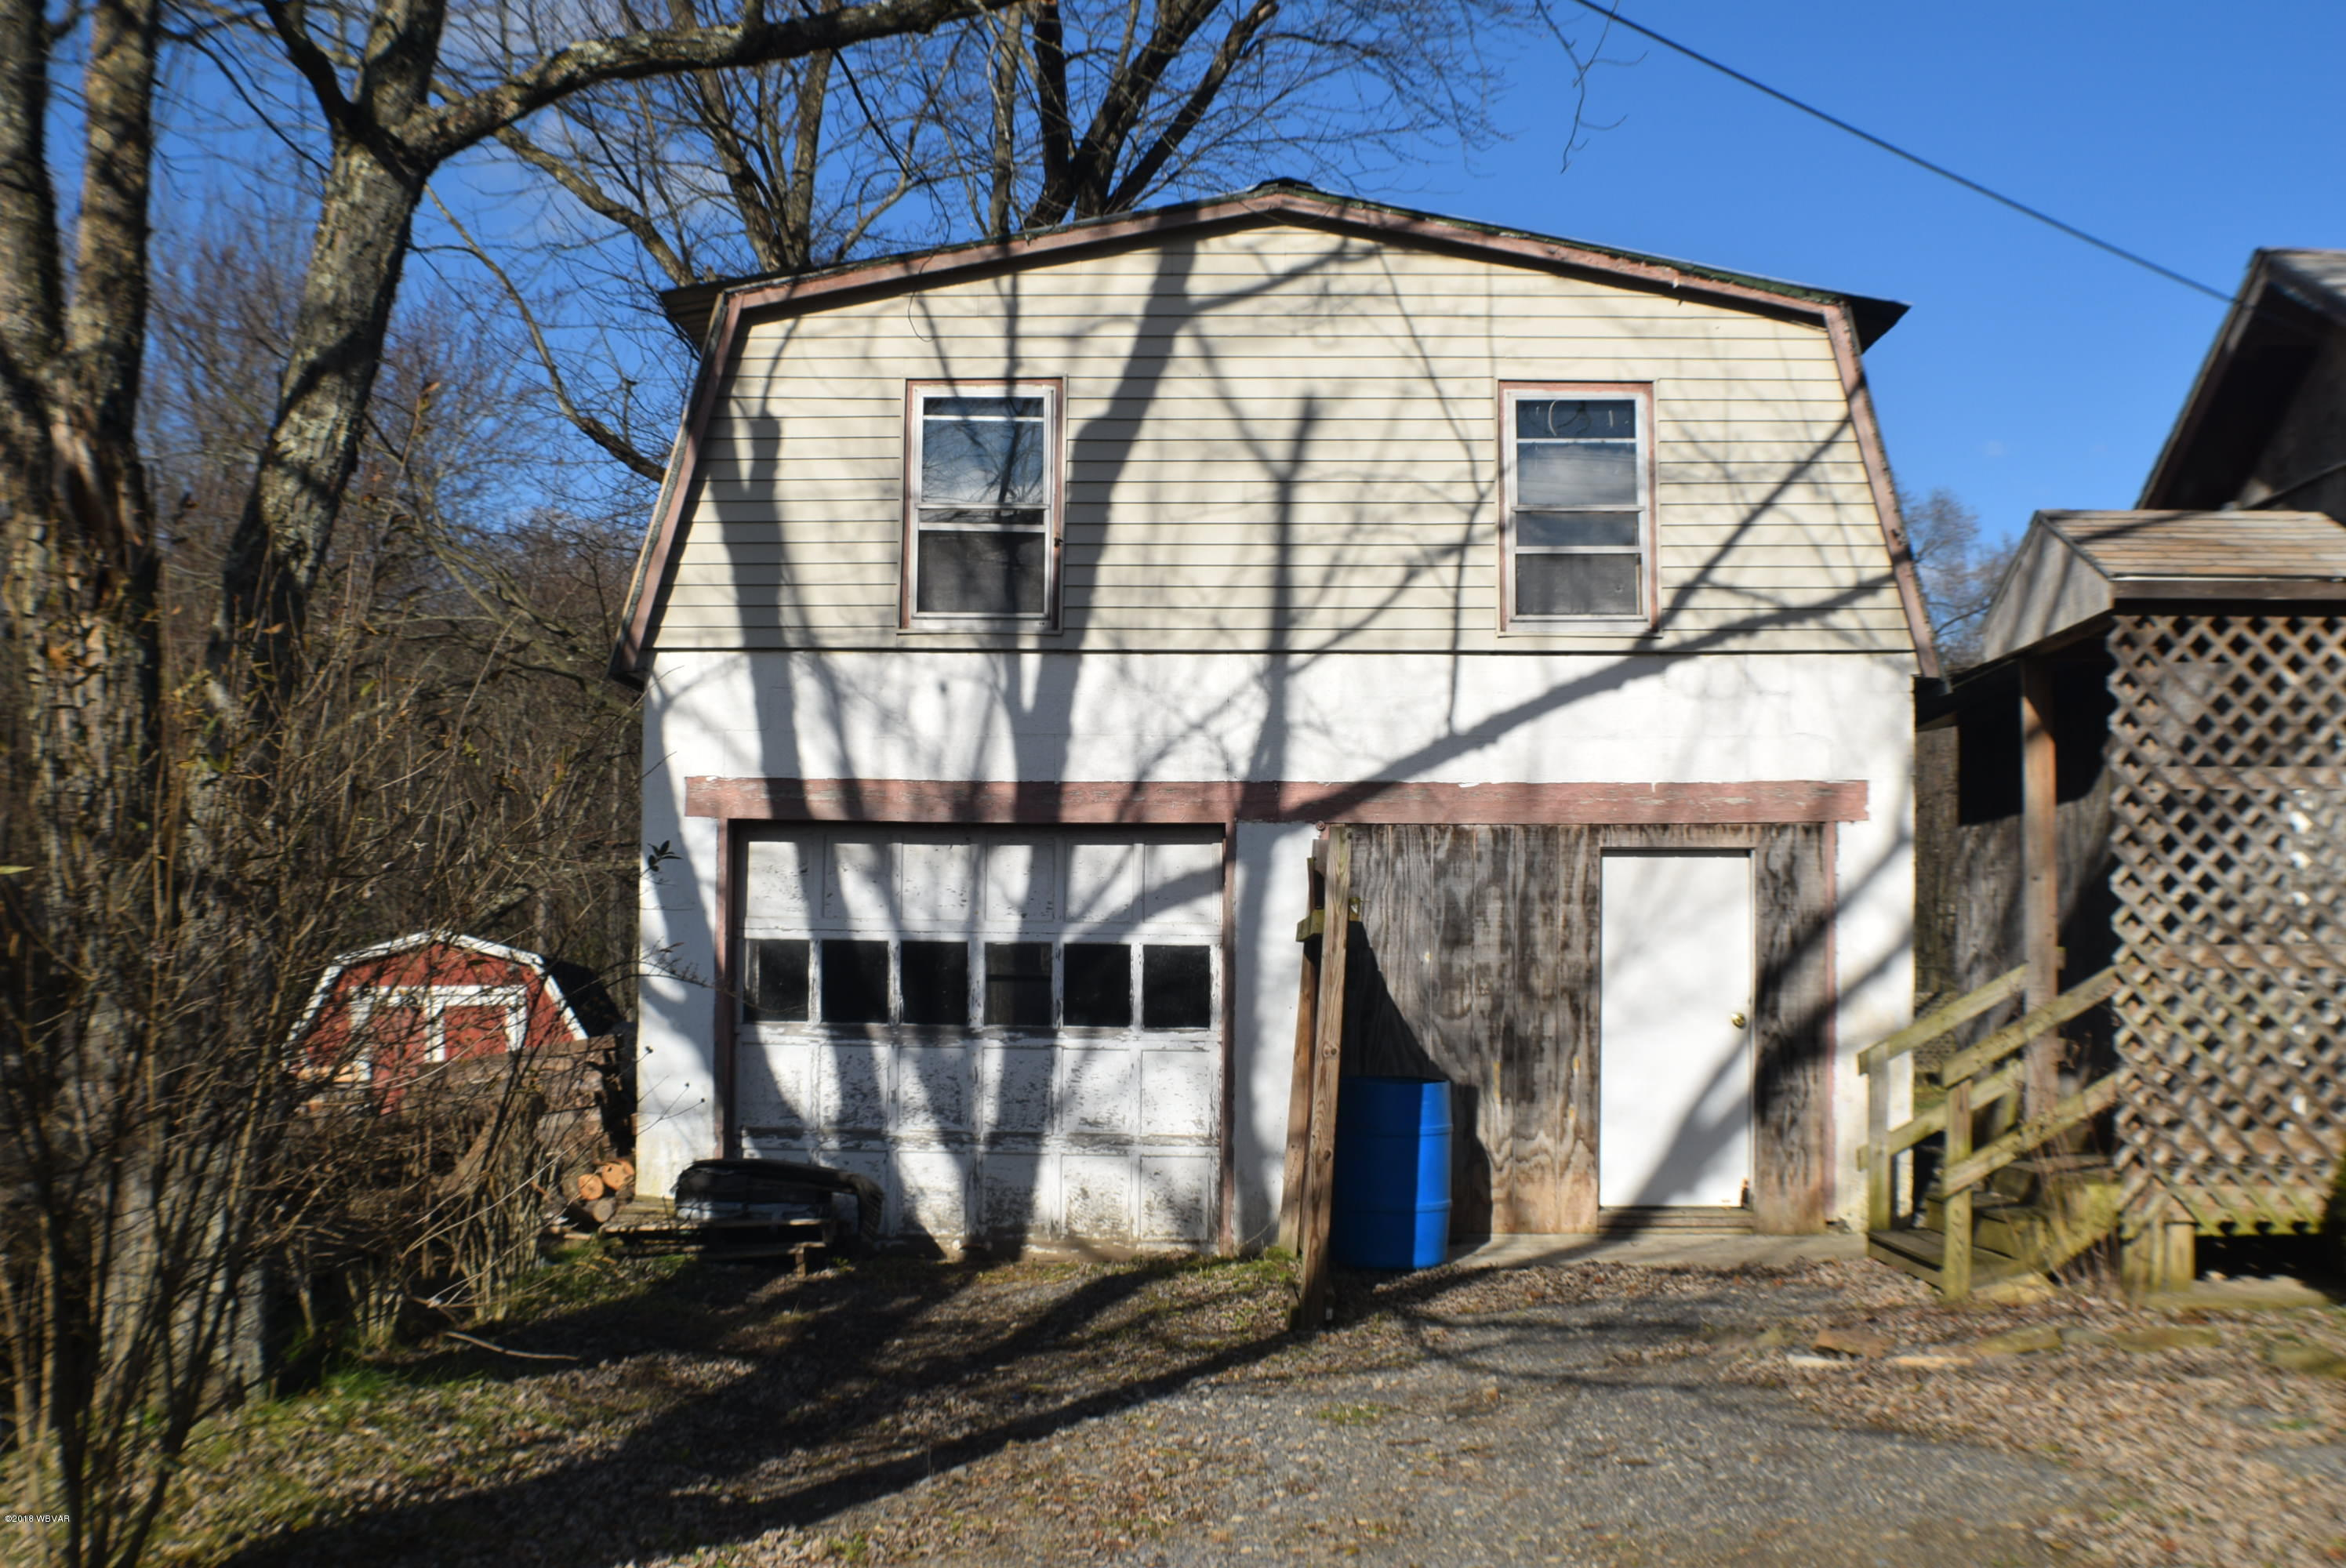 18280 OLD TURNPIKE ROAD,Millmont,PA 17845,2 Bedrooms Bedrooms,2 BathroomsBathrooms,Residential,OLD TURNPIKE,WB-86011